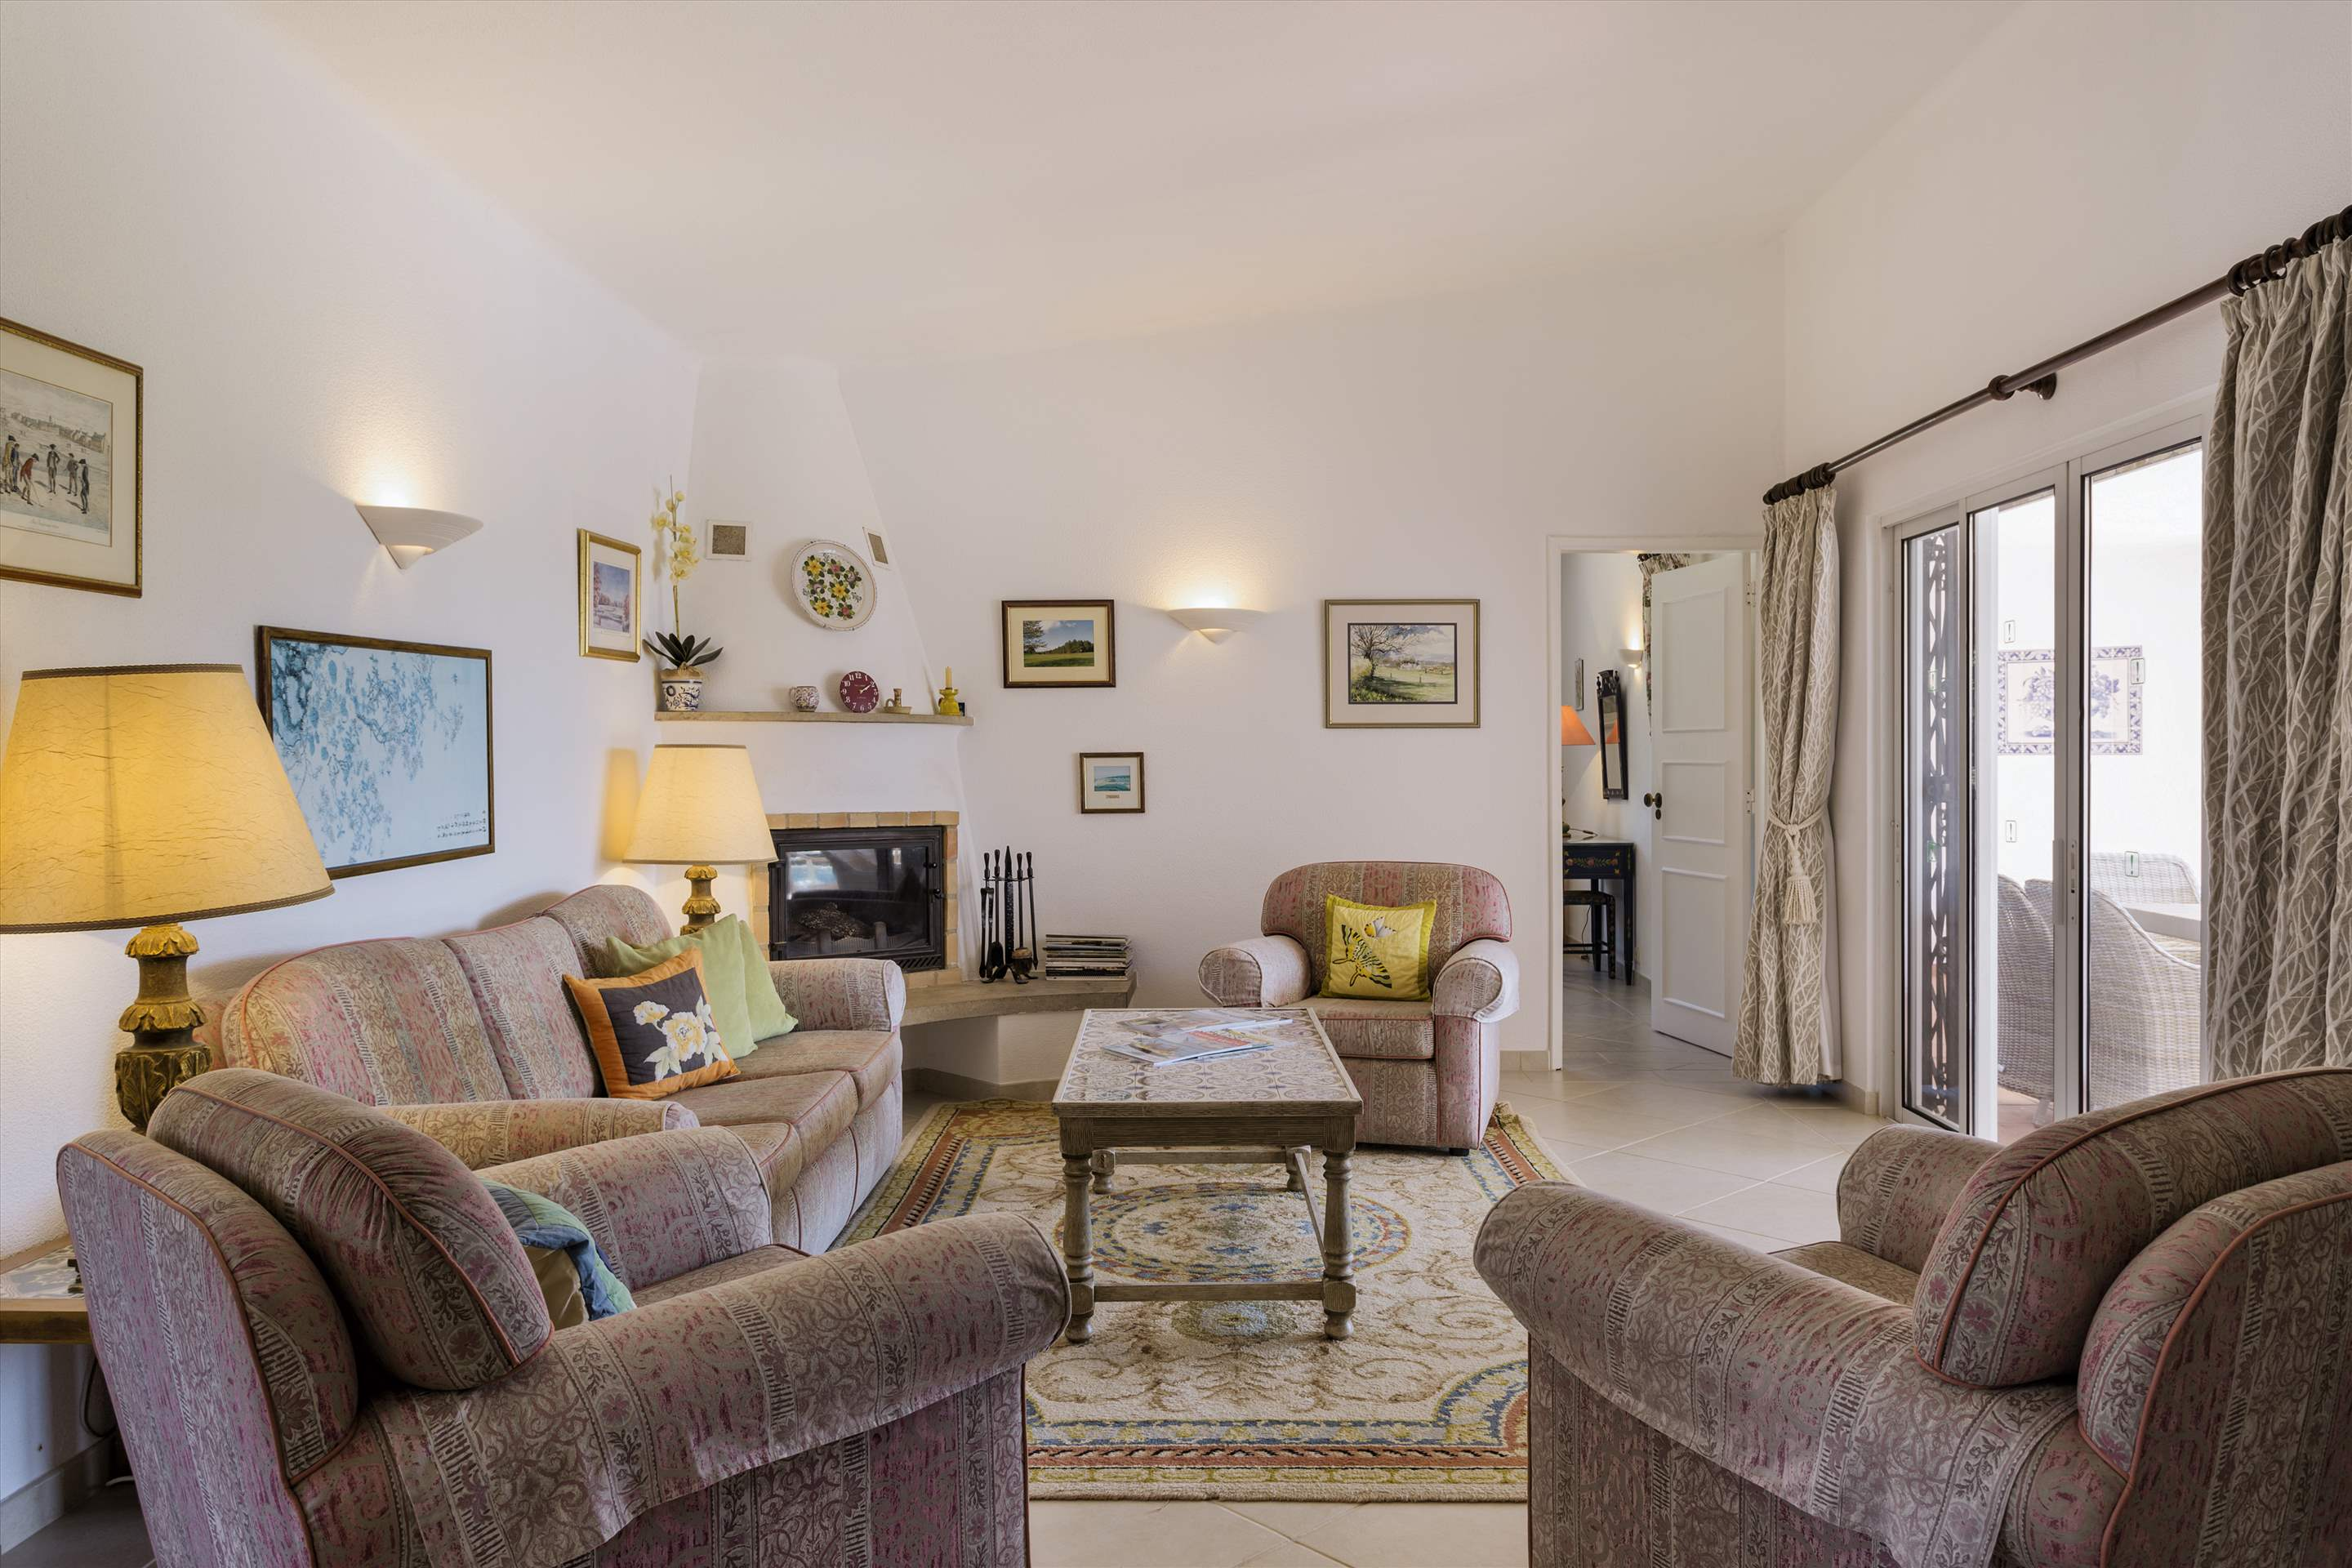 Villa Palmeira, 3 bedroom villa in Vale do Lobo, Algarve Photo #4